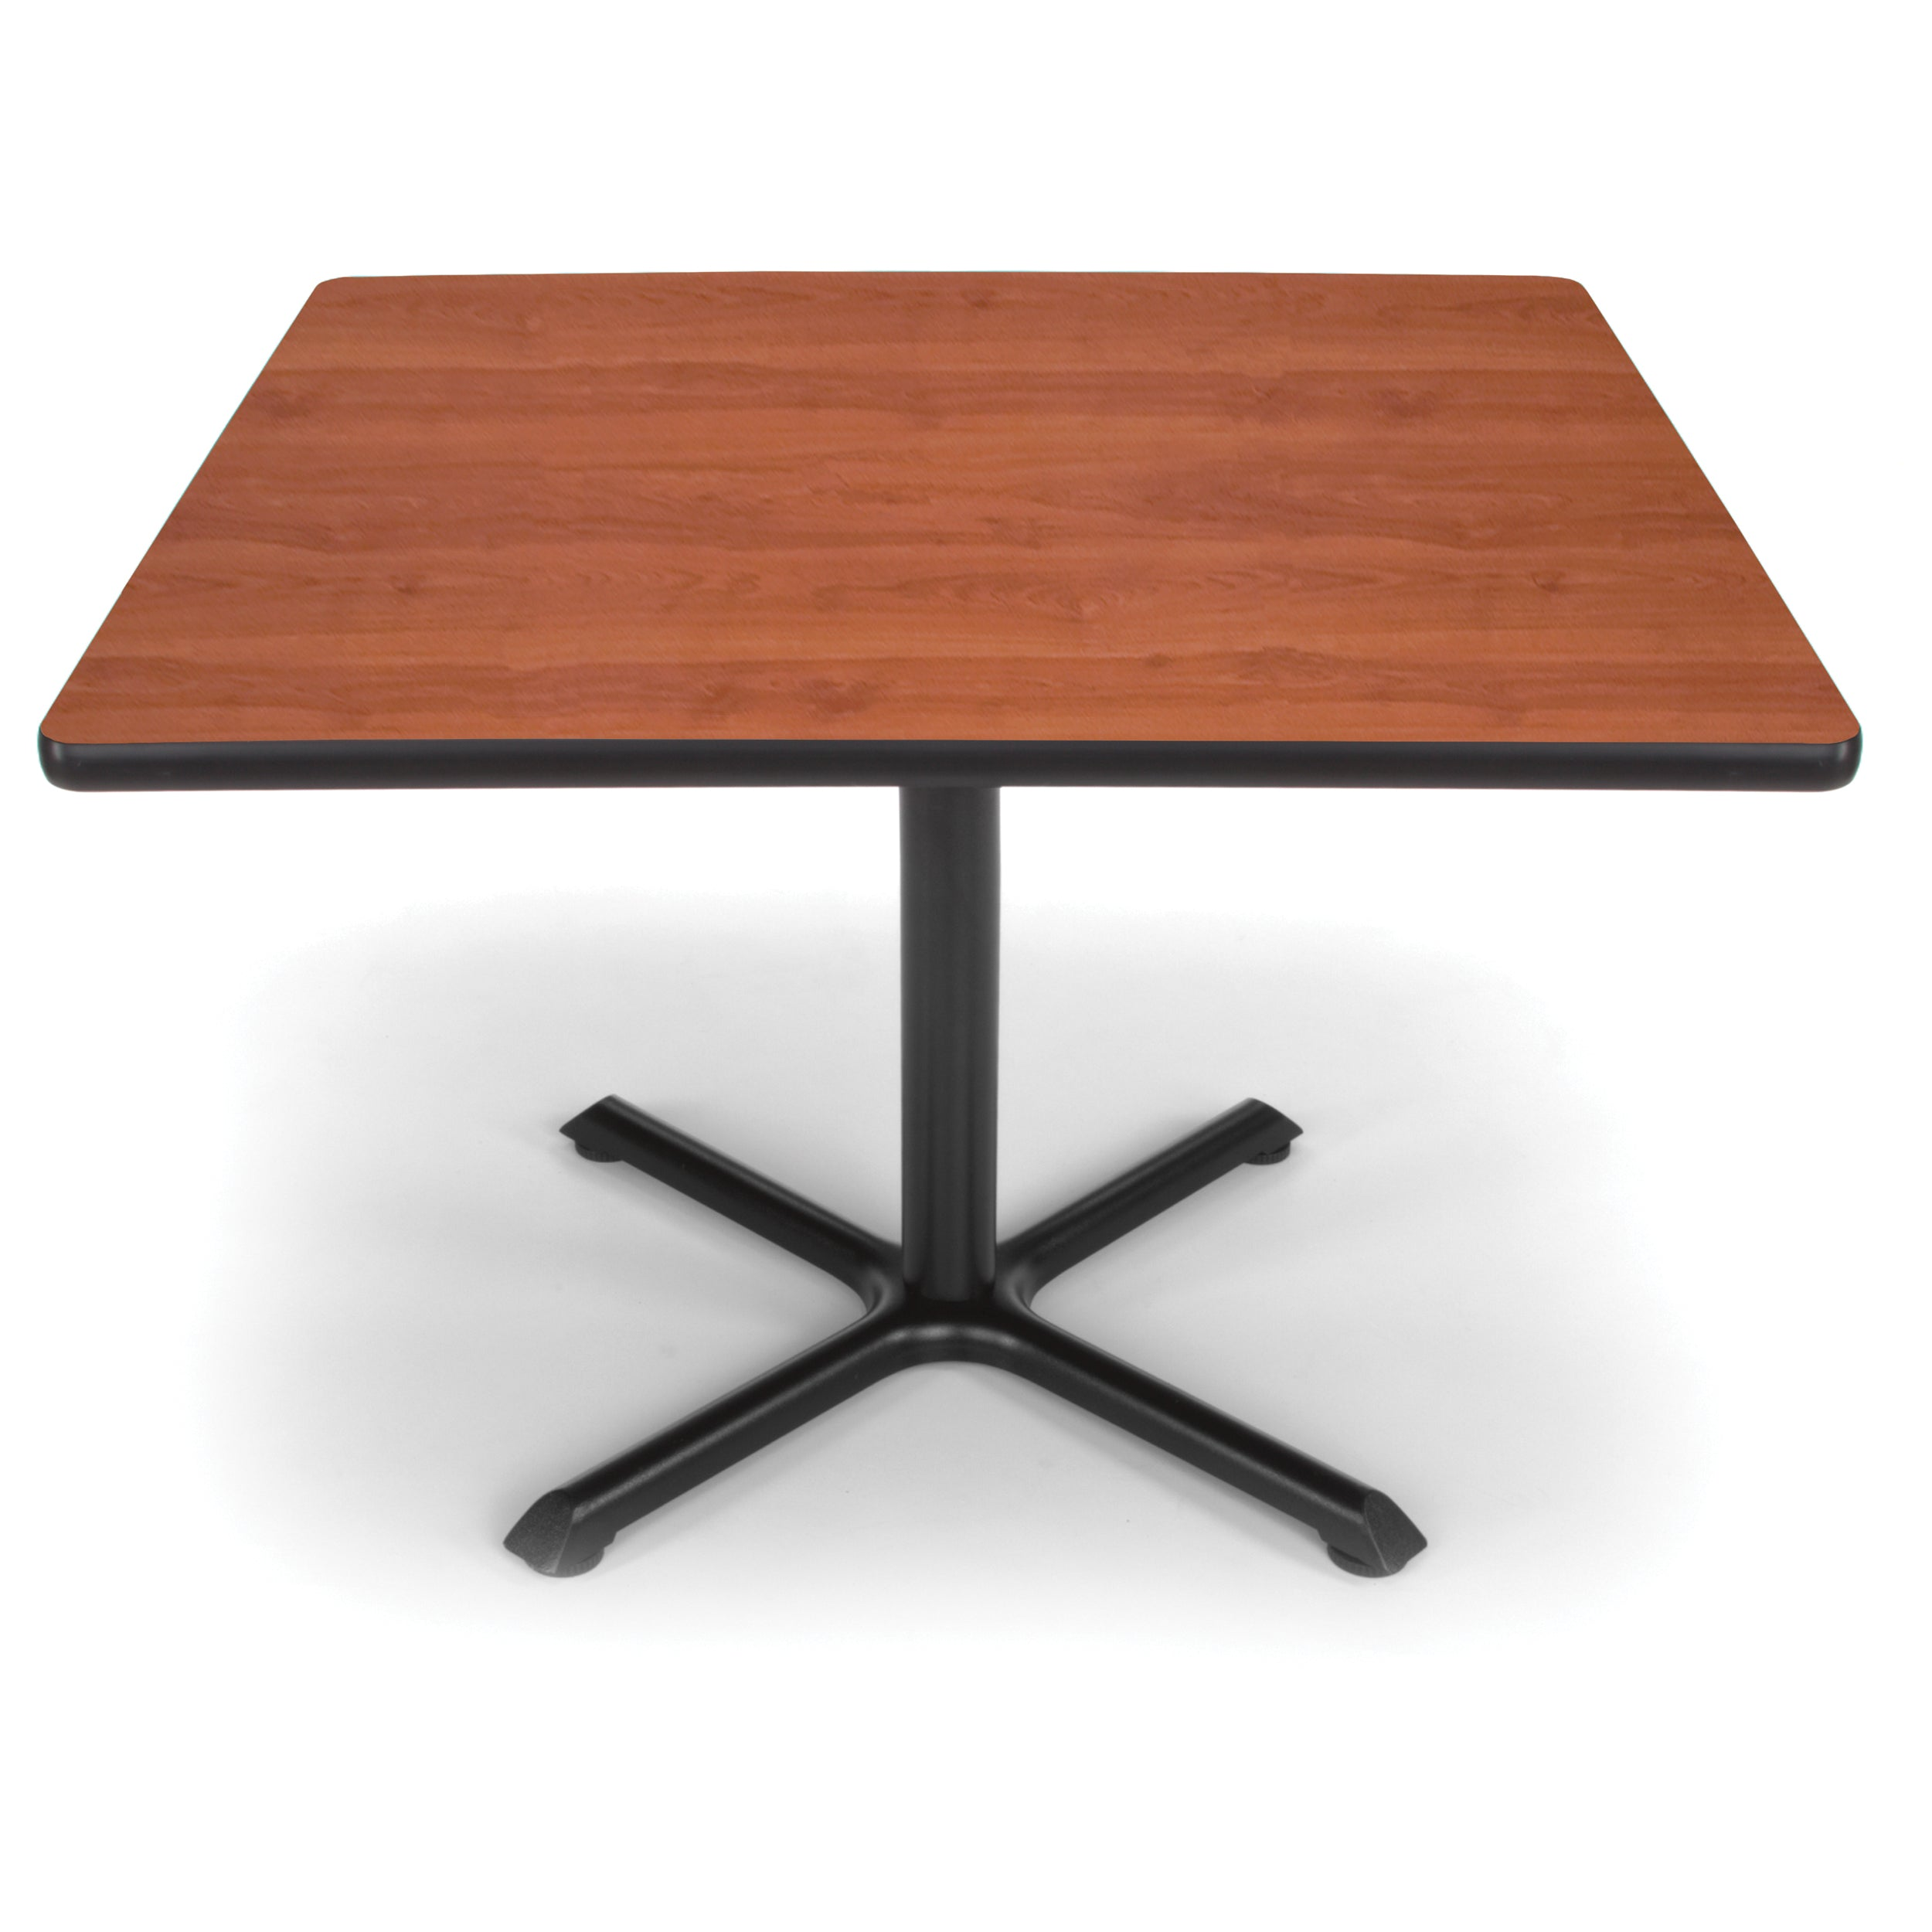 Ofminc Model XT42SQ 42 Inch Square Multi-Purpose Table